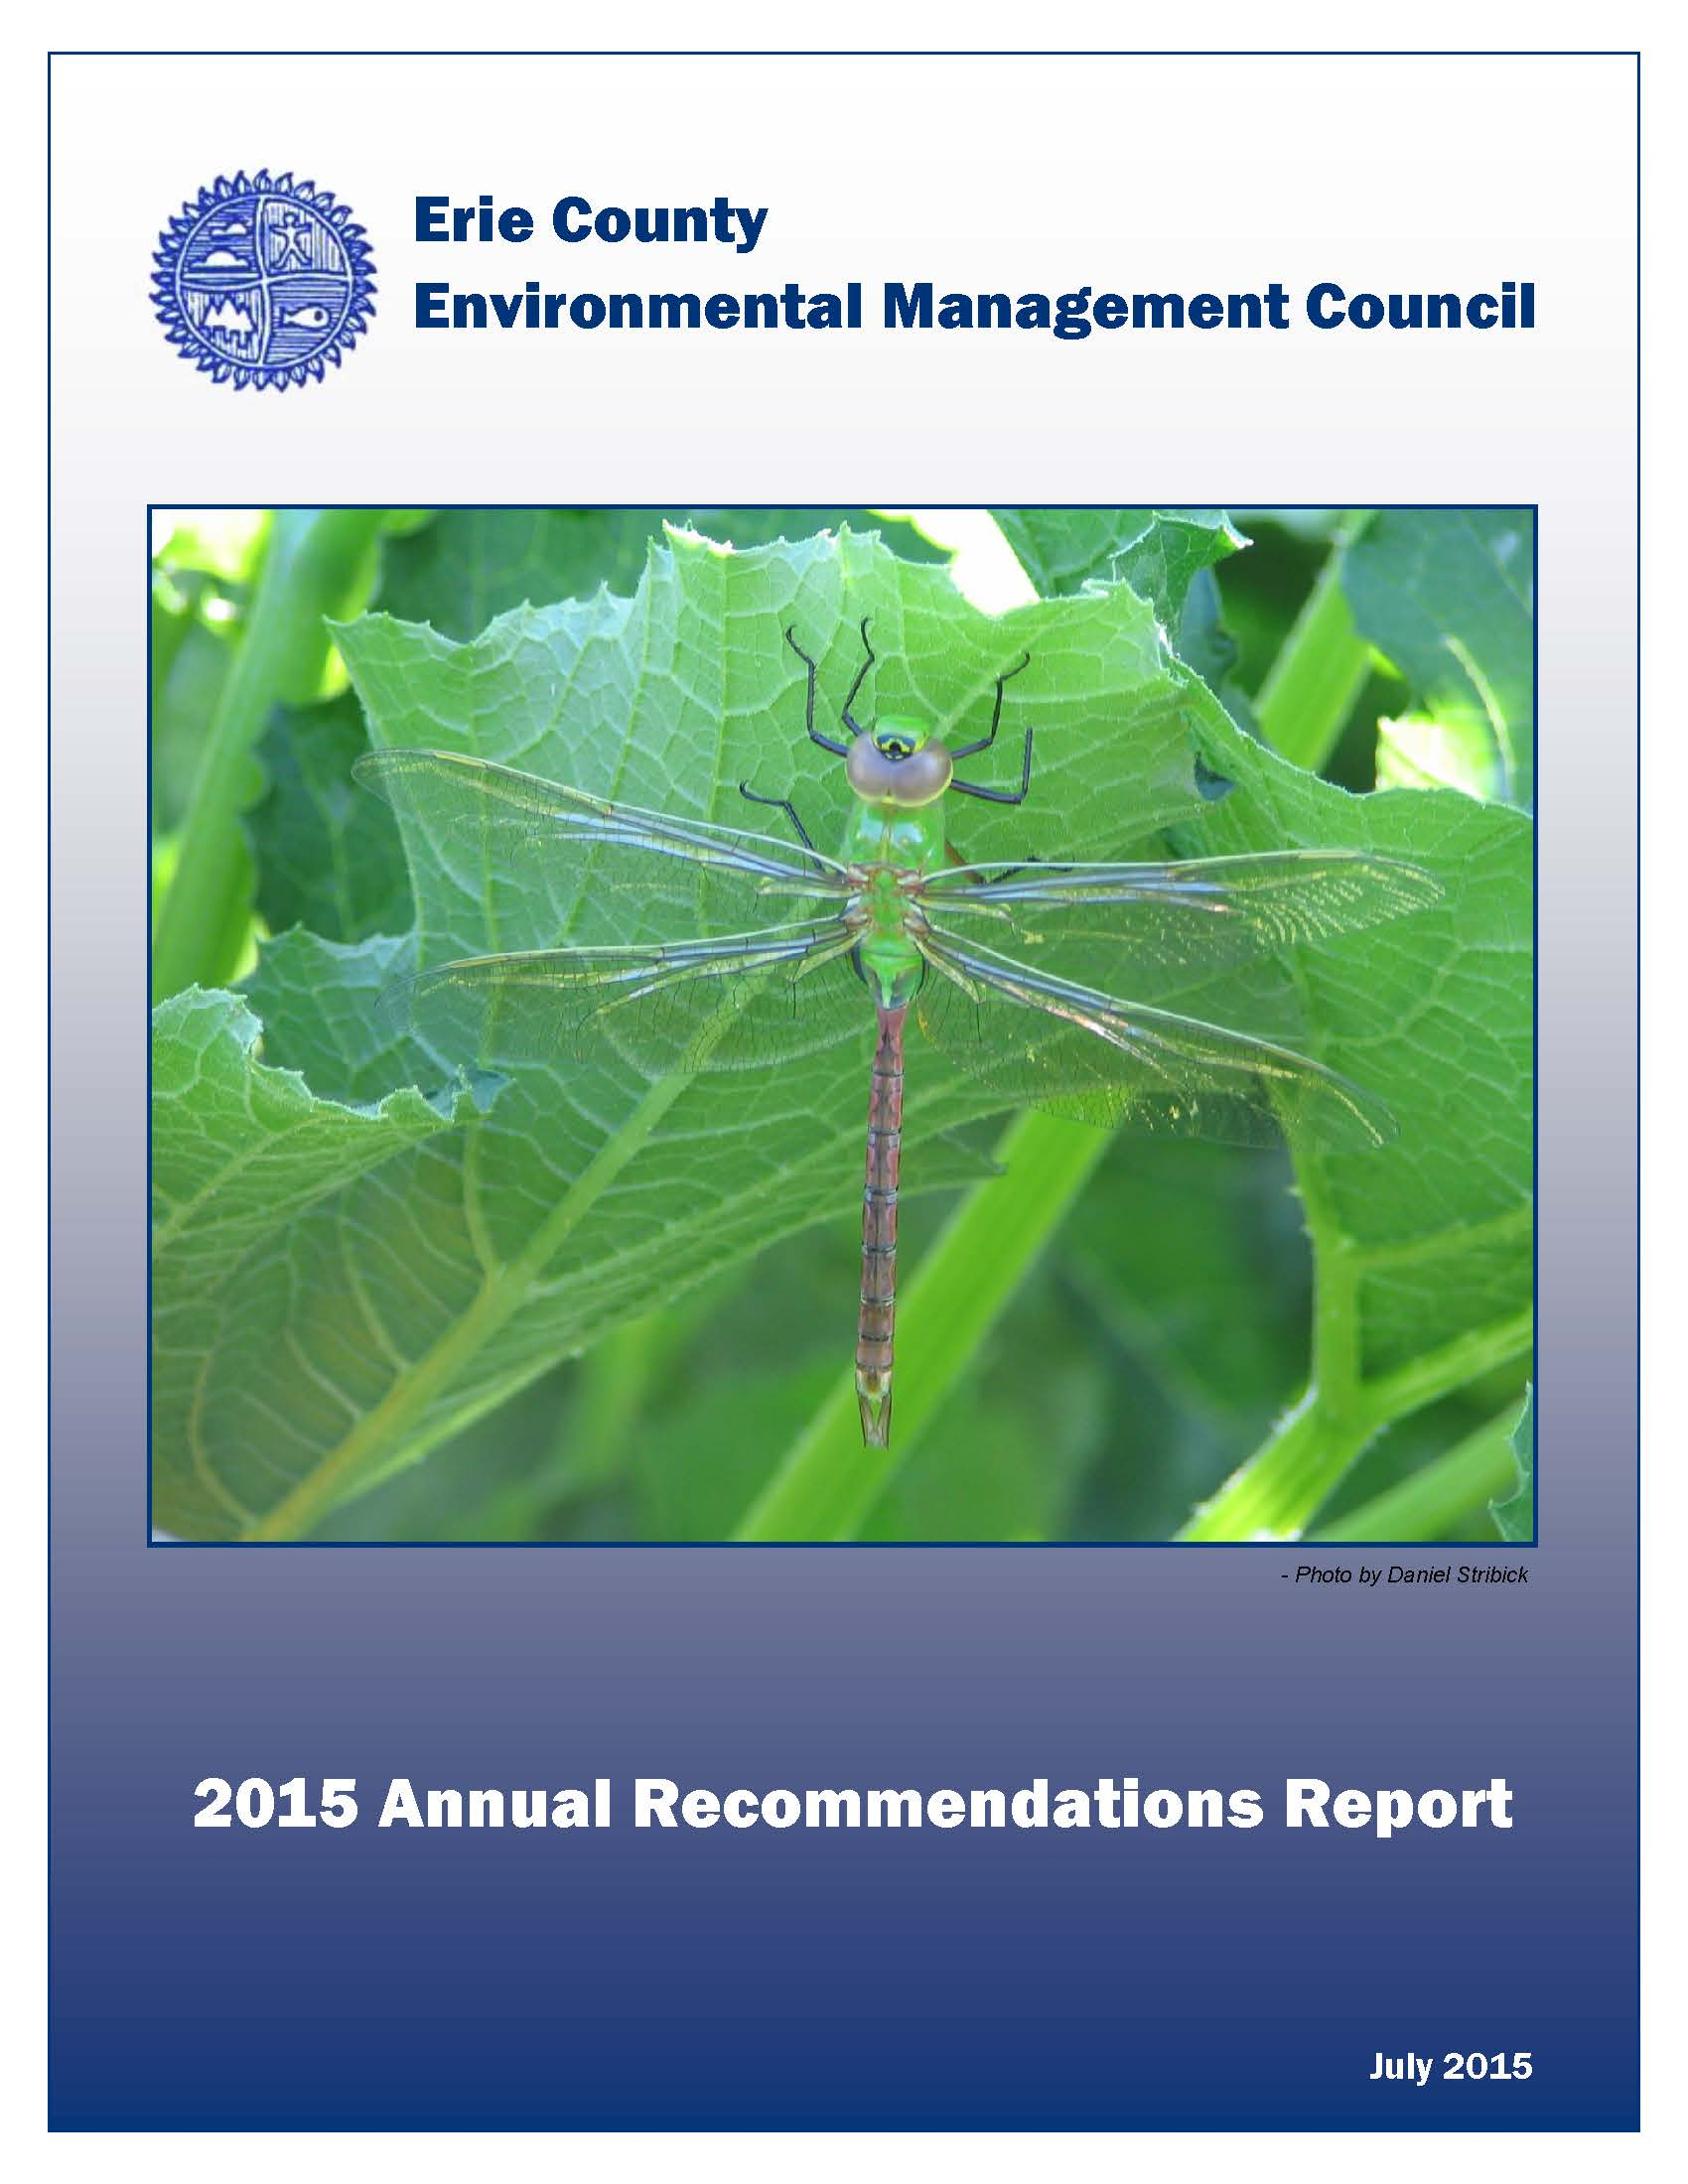 2015 Annual Recommendation Report Cover